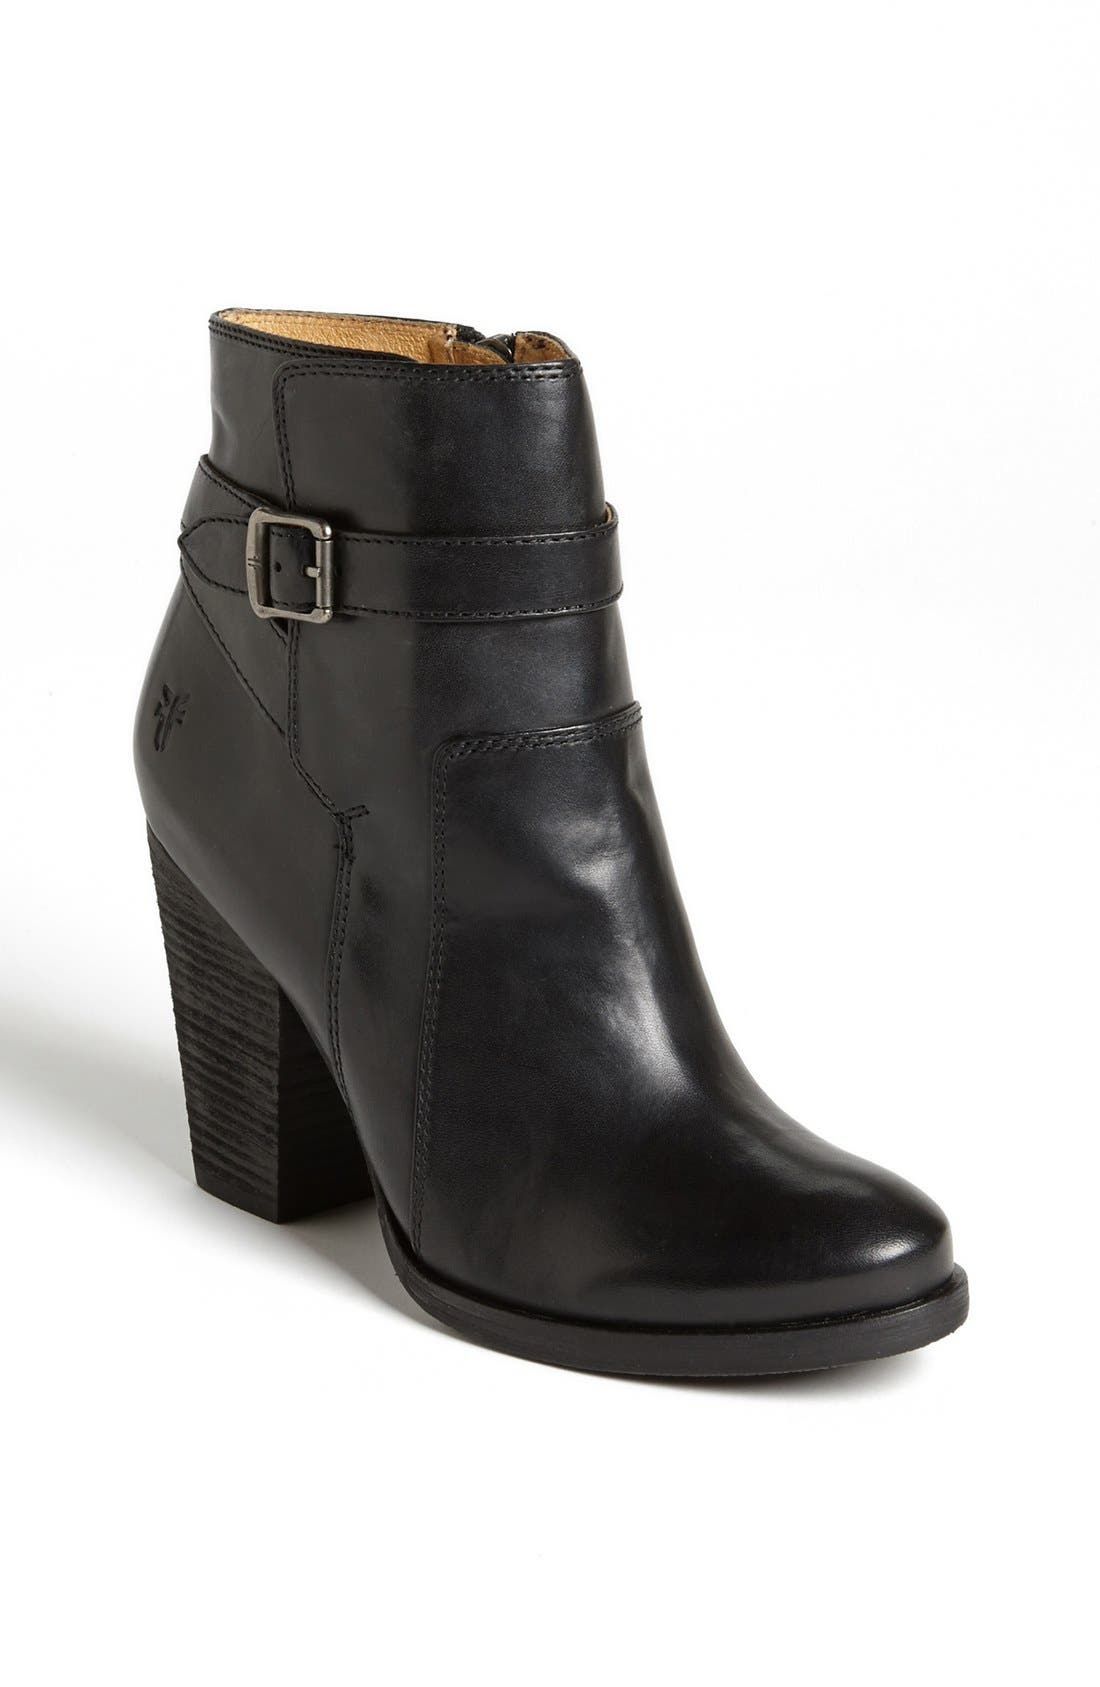 'Patty' Leather Riding Bootie,                             Main thumbnail 1, color,                             001